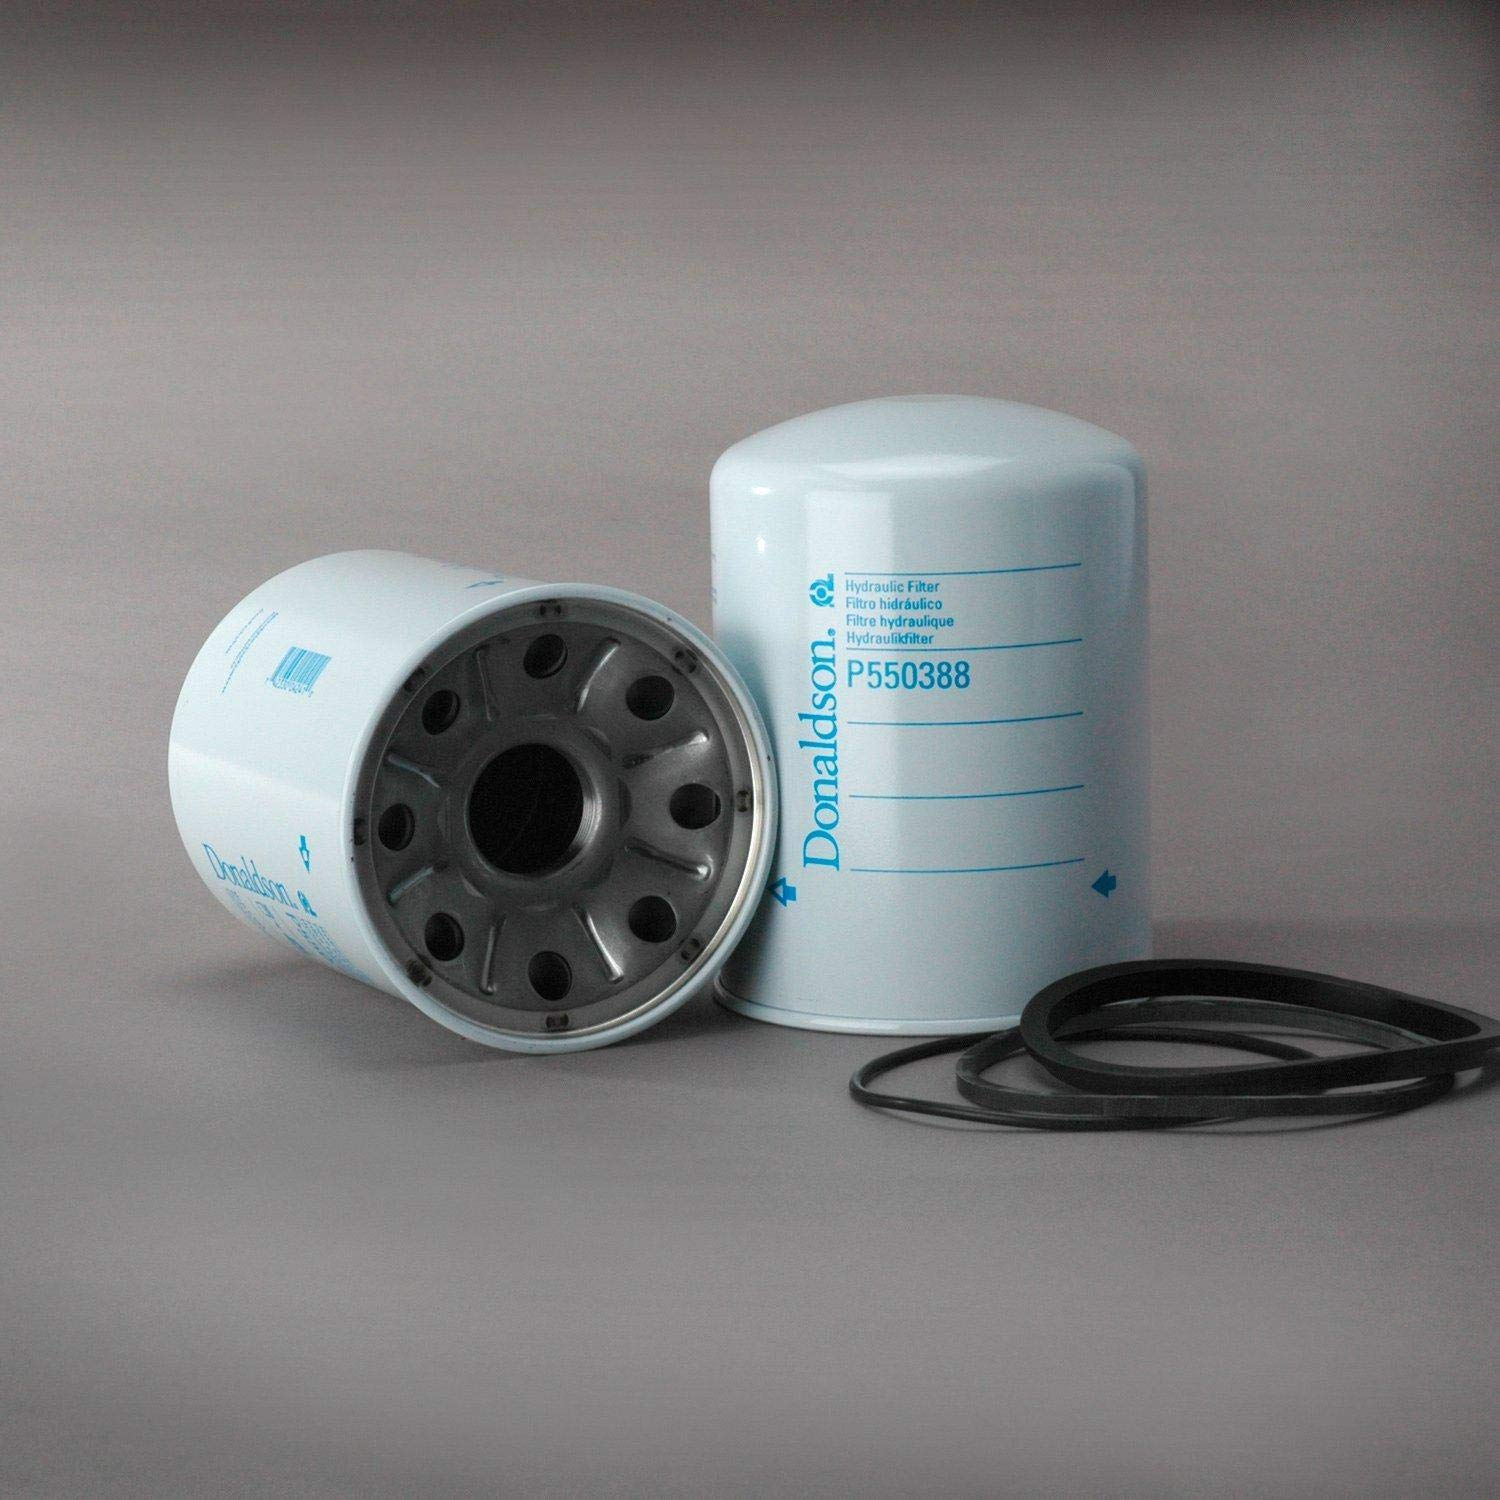 Donaldson P550388 Hydraulic Filter (Spin-on)